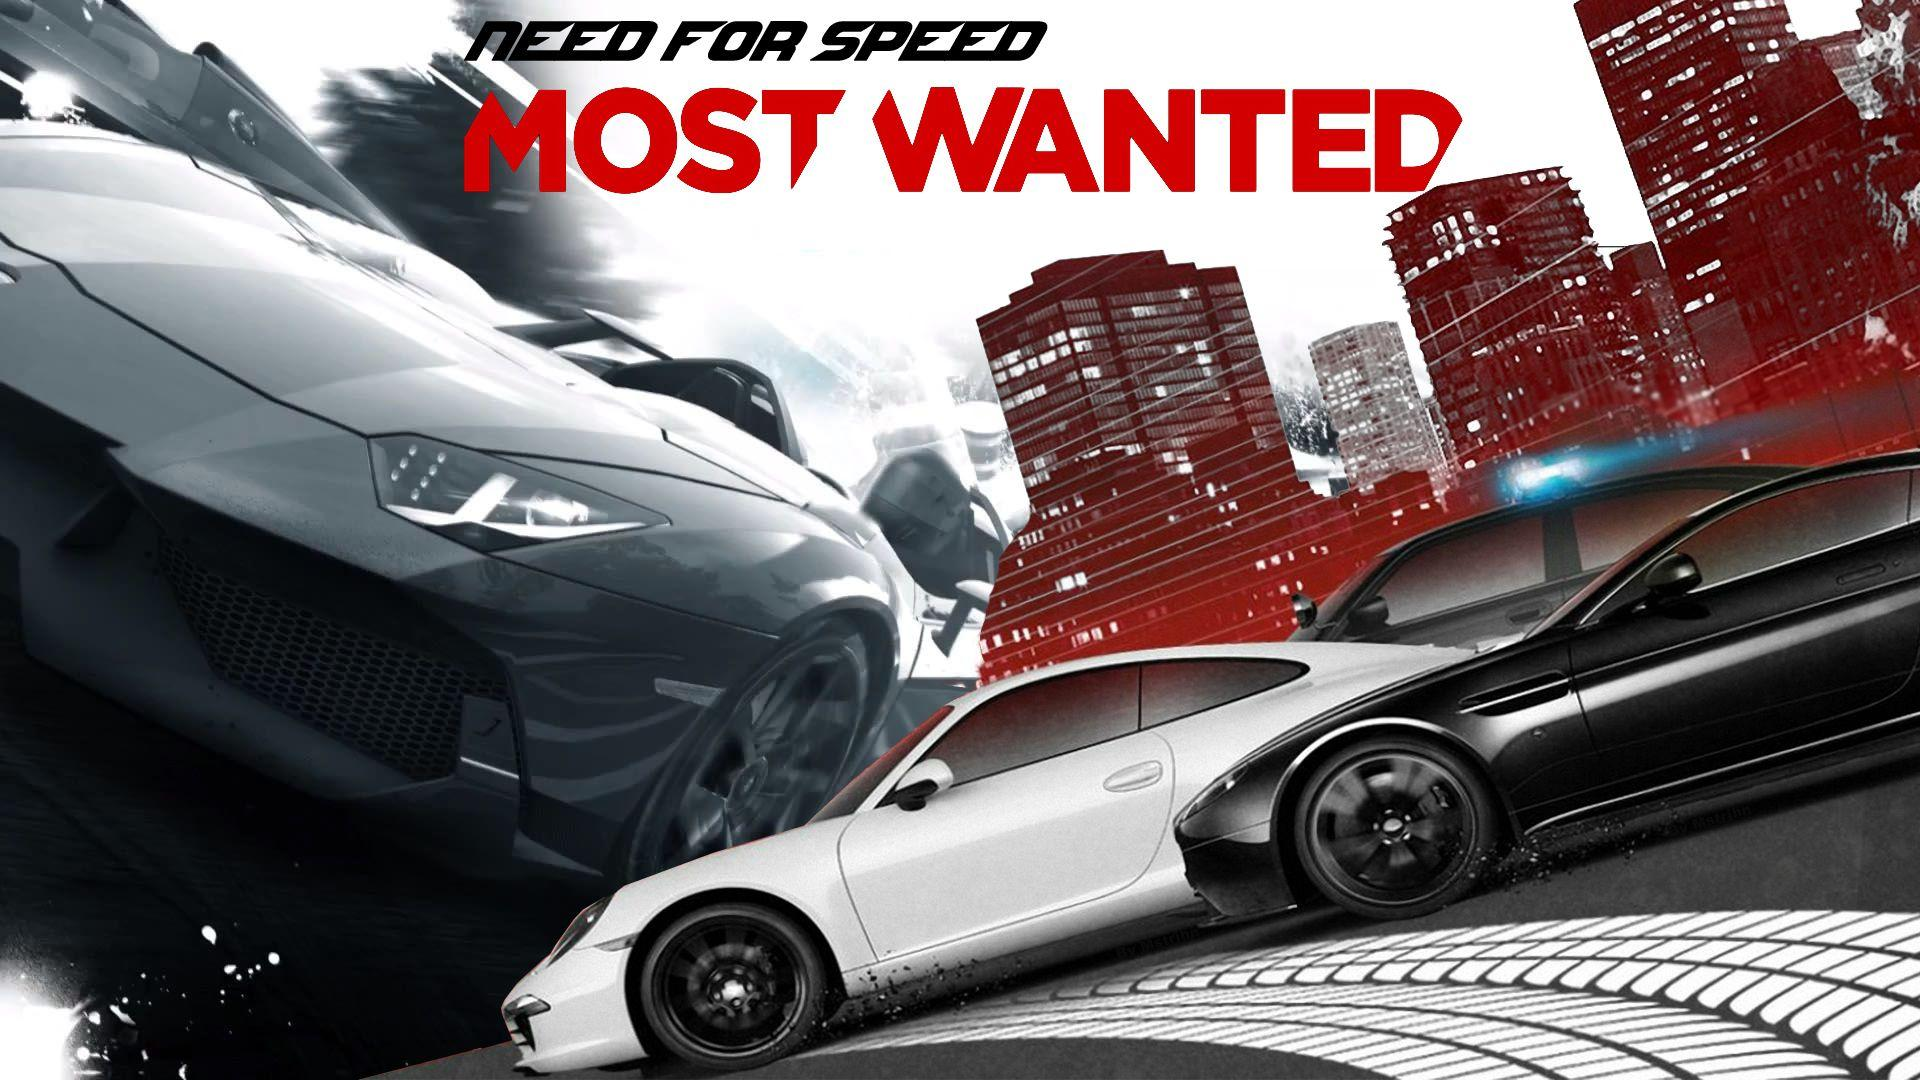 Download Need For Speed Most Wanted 2005 Ocean Of Games Redbocon78 Site